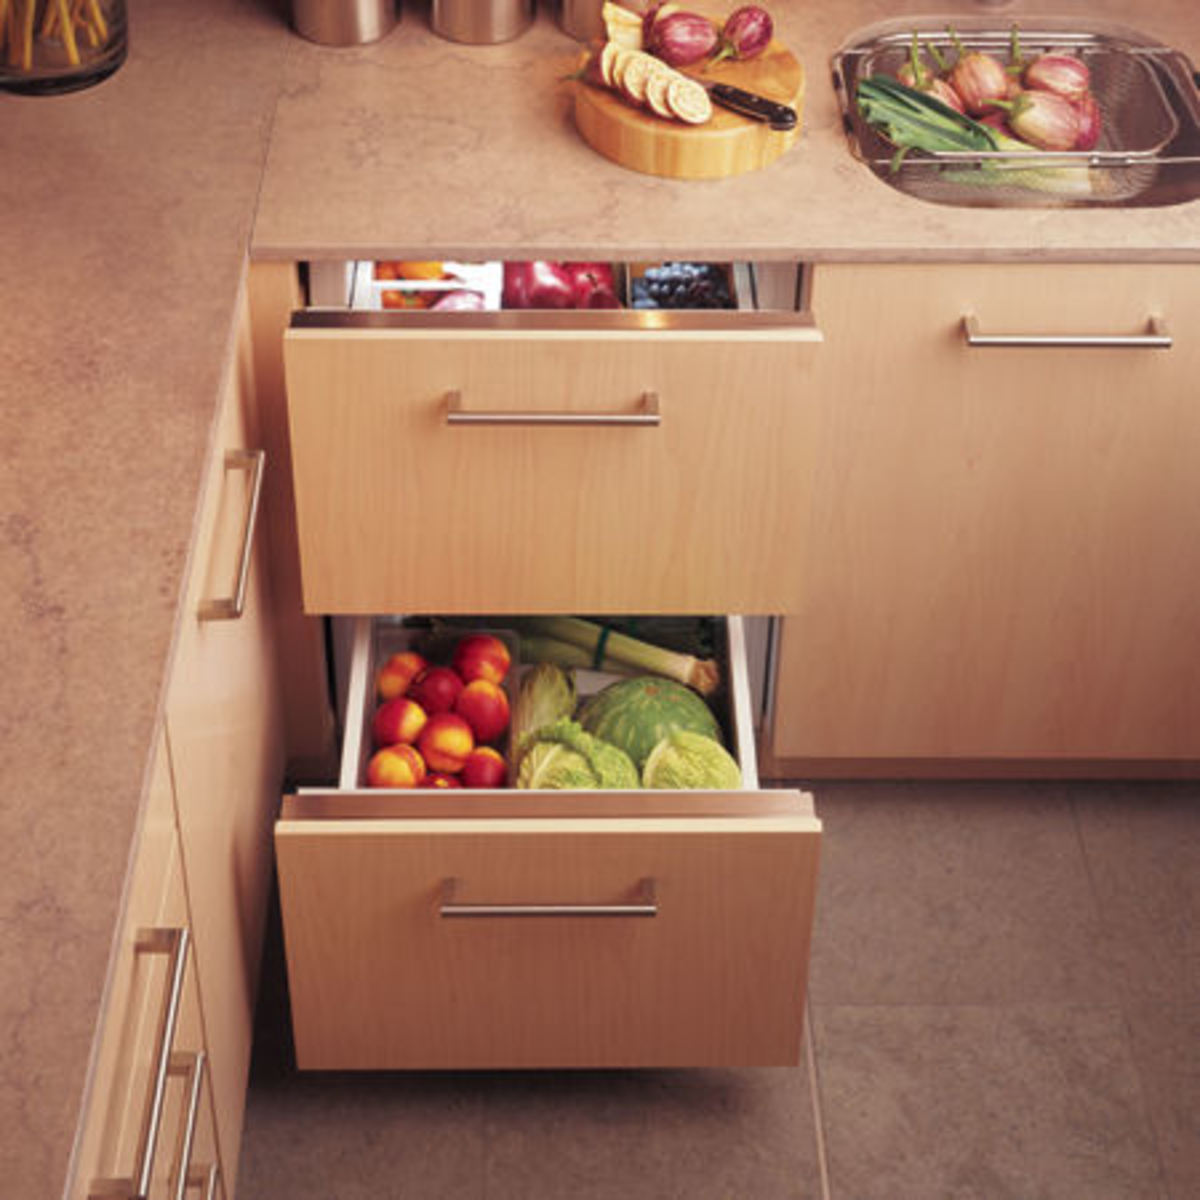 Latest Trends Under Counter Refrigerator